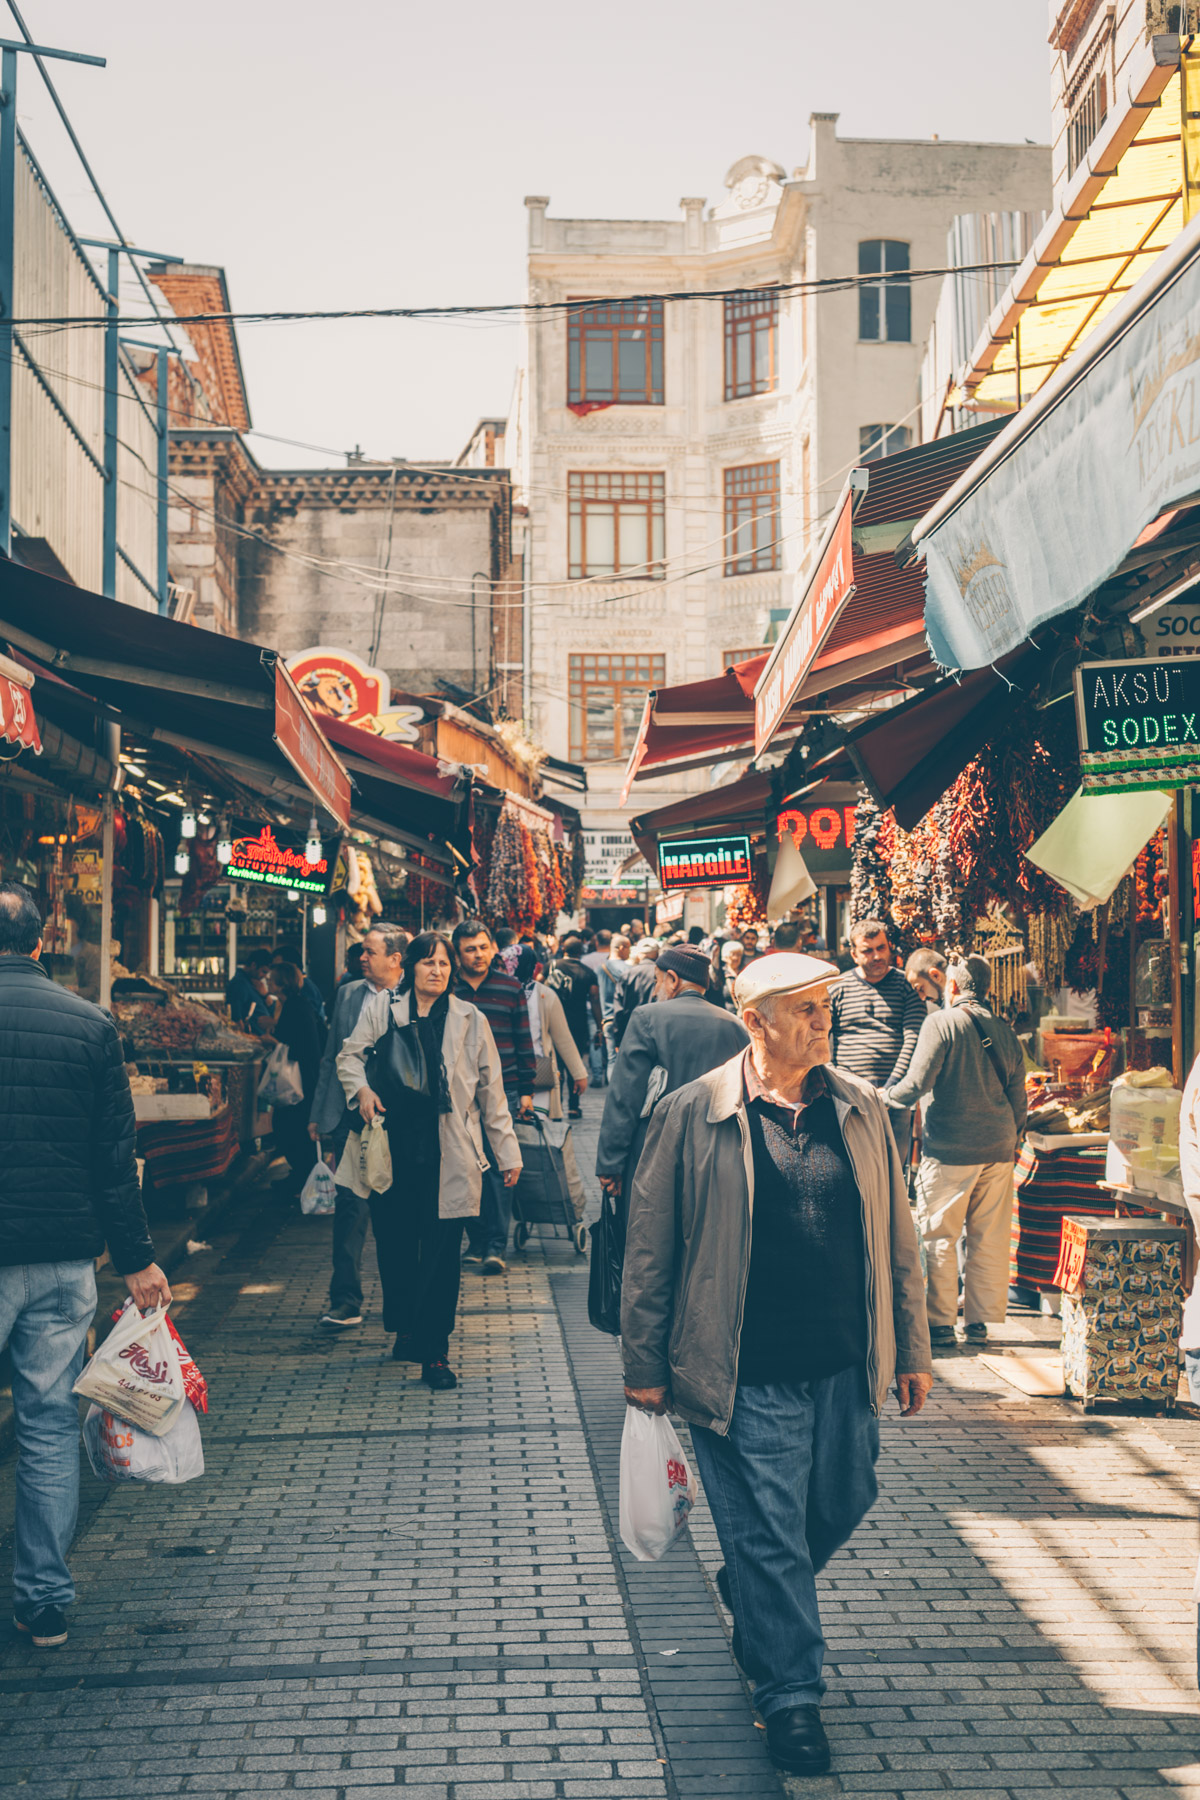 A Quick Travel and Food Guide to Old Istanbul by Kati of black.white.vivid.